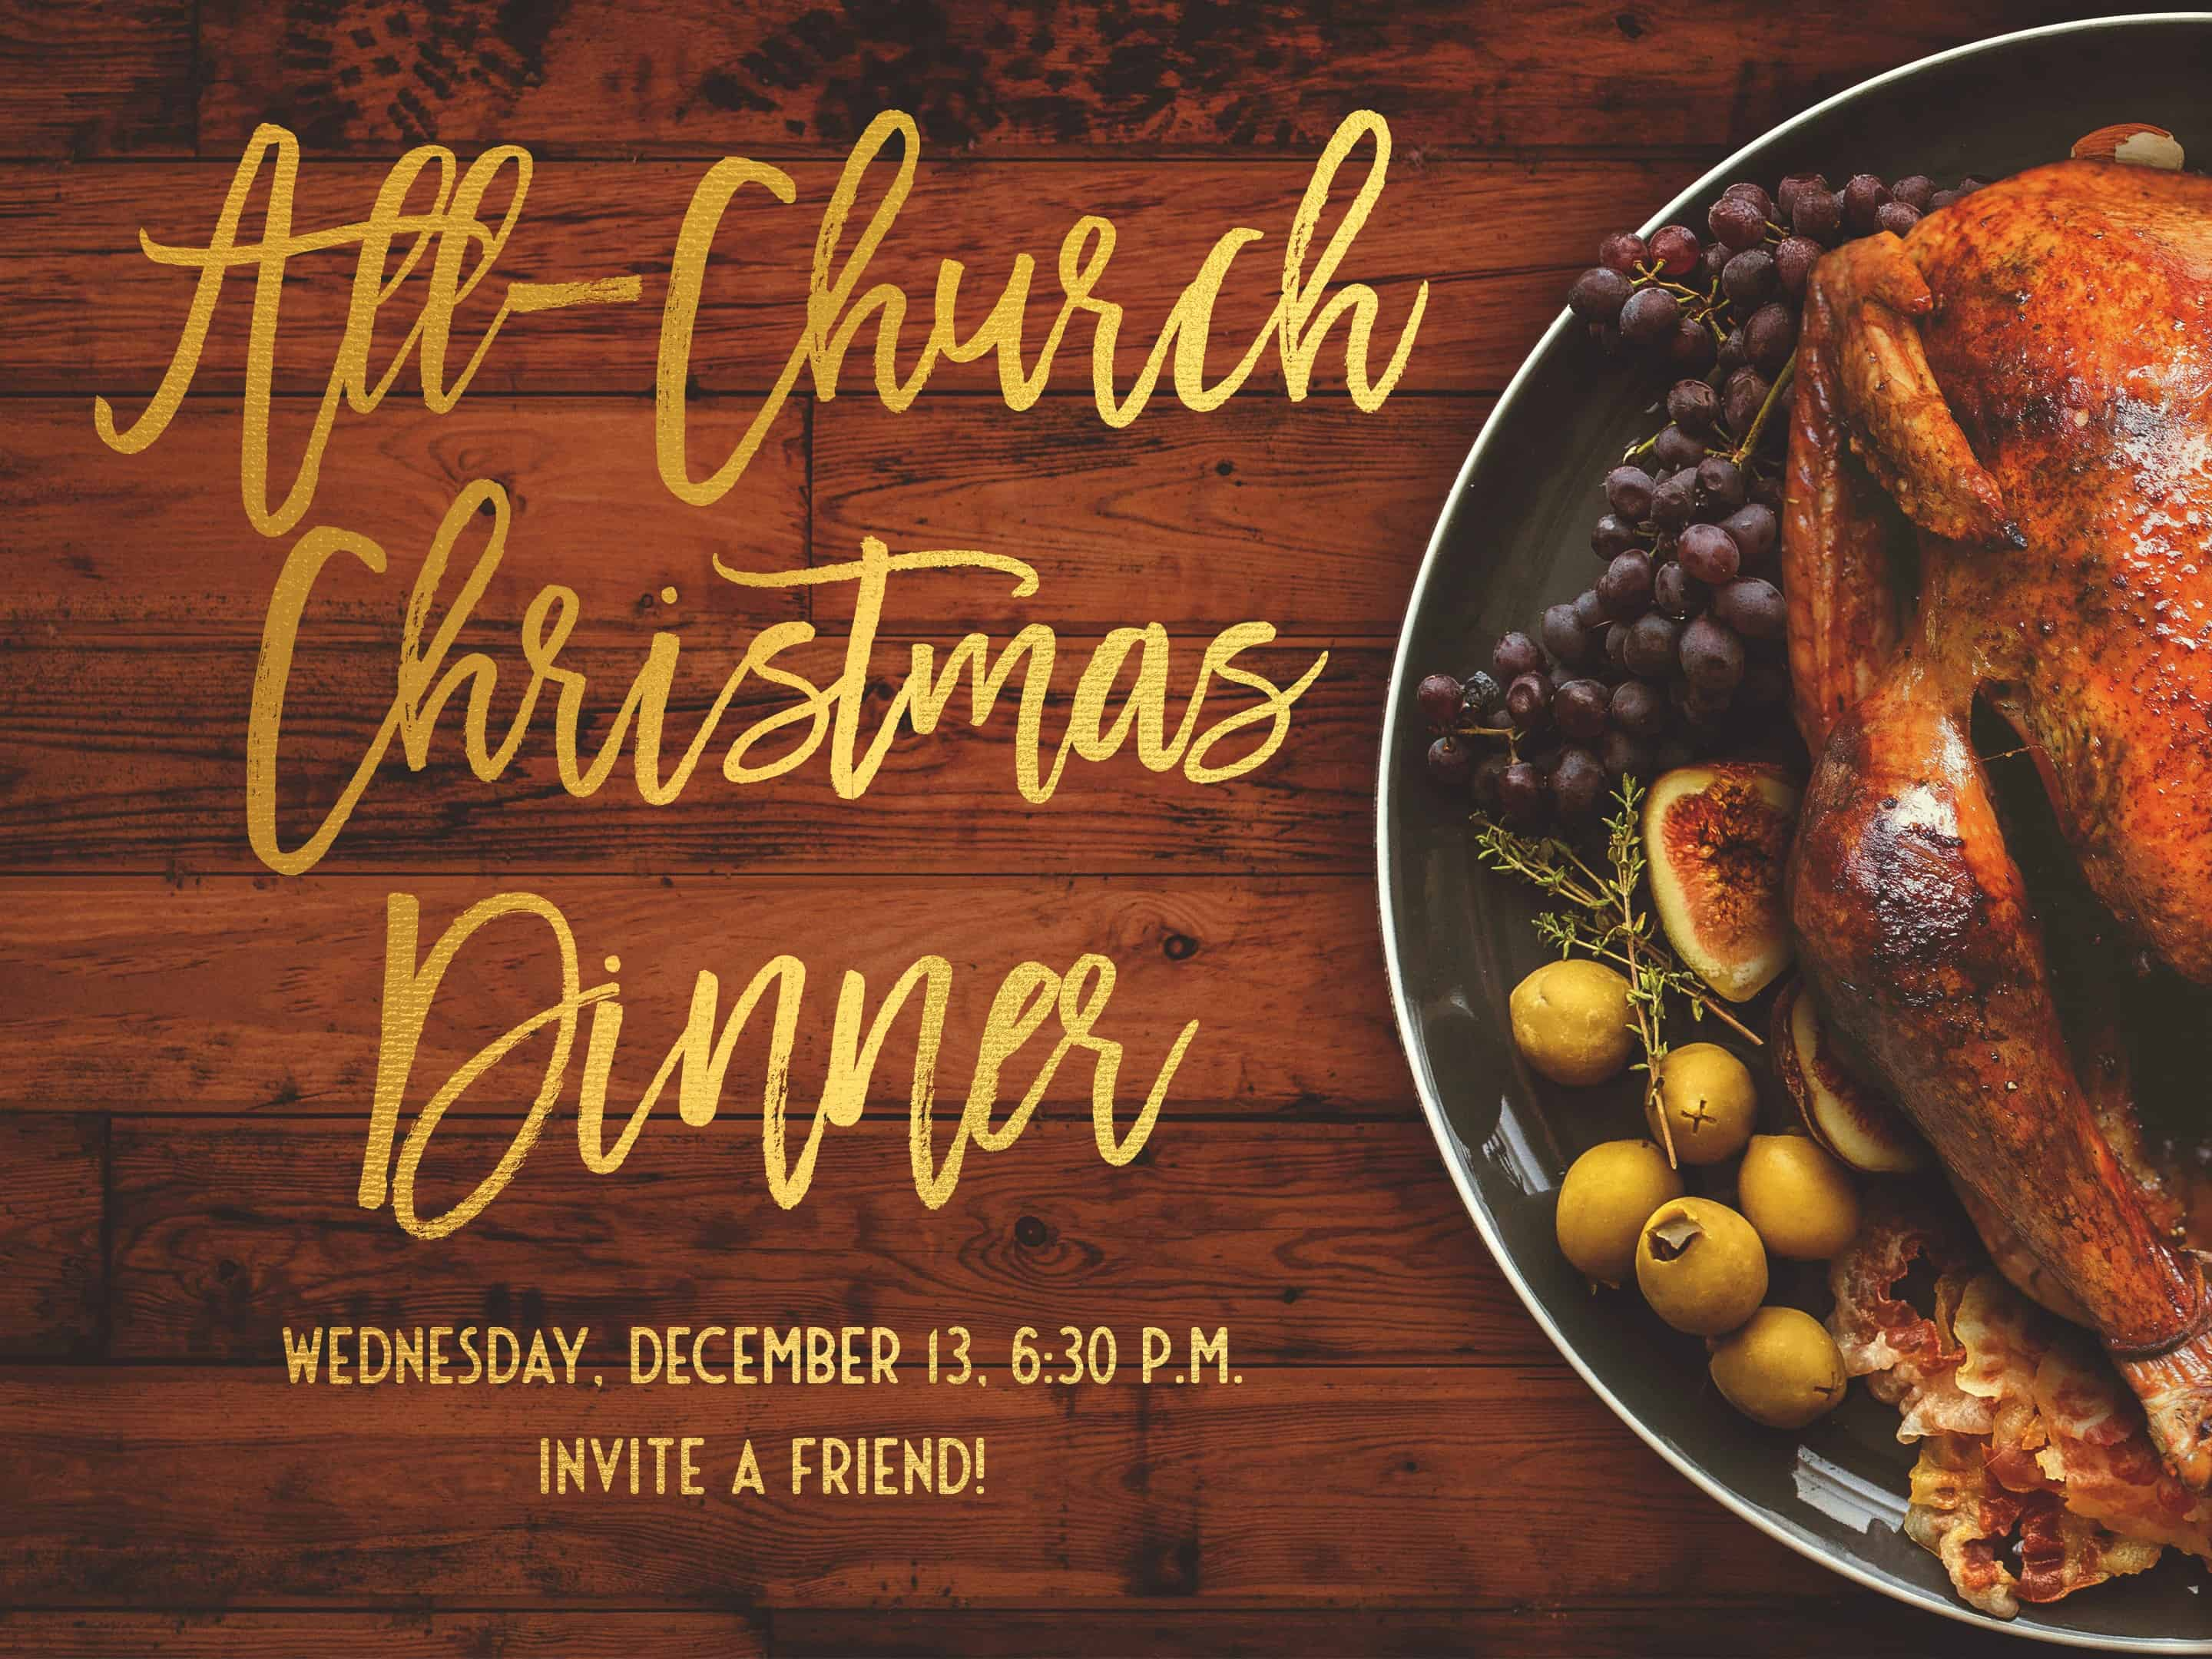 Church Christmas Dinner.All Church Christmas Dinner Gfa Online